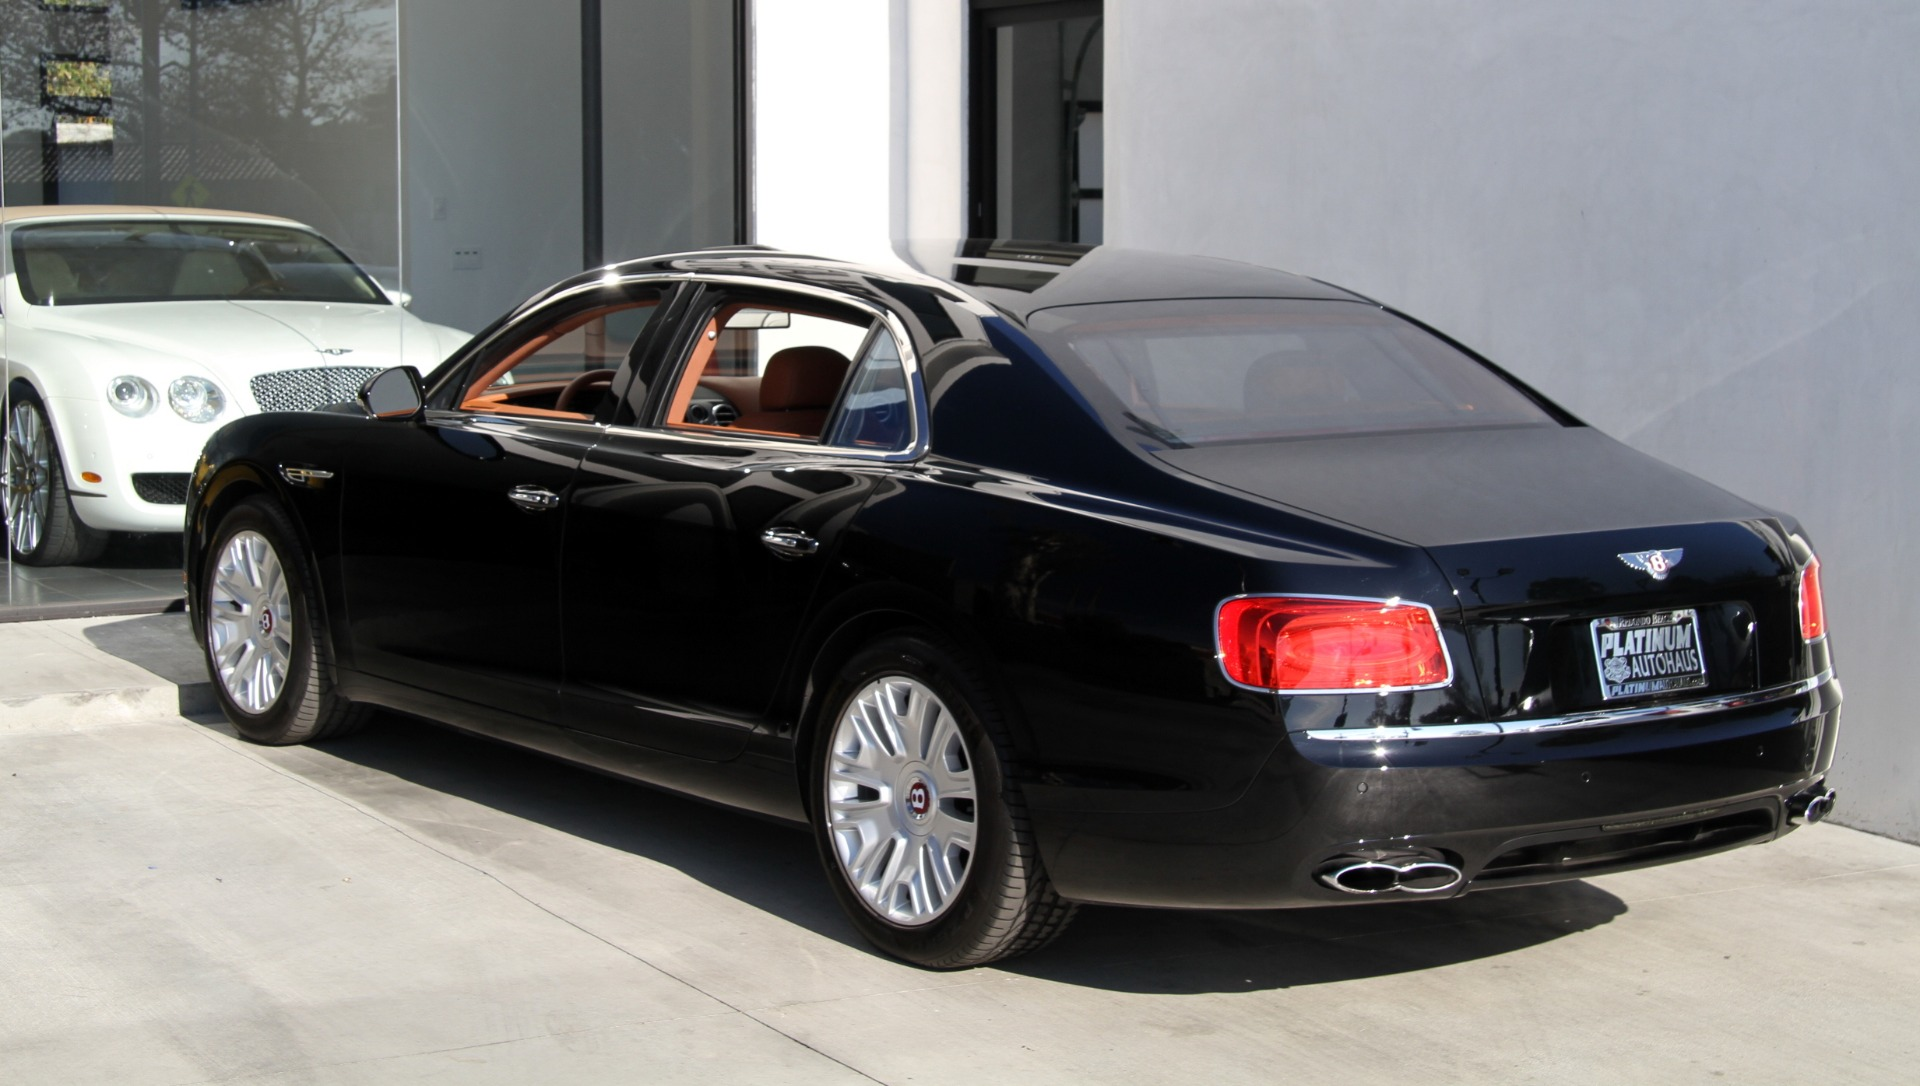 2015 Bentley Flying Spur V8 Stock # 042018 for sale near Redondo ...